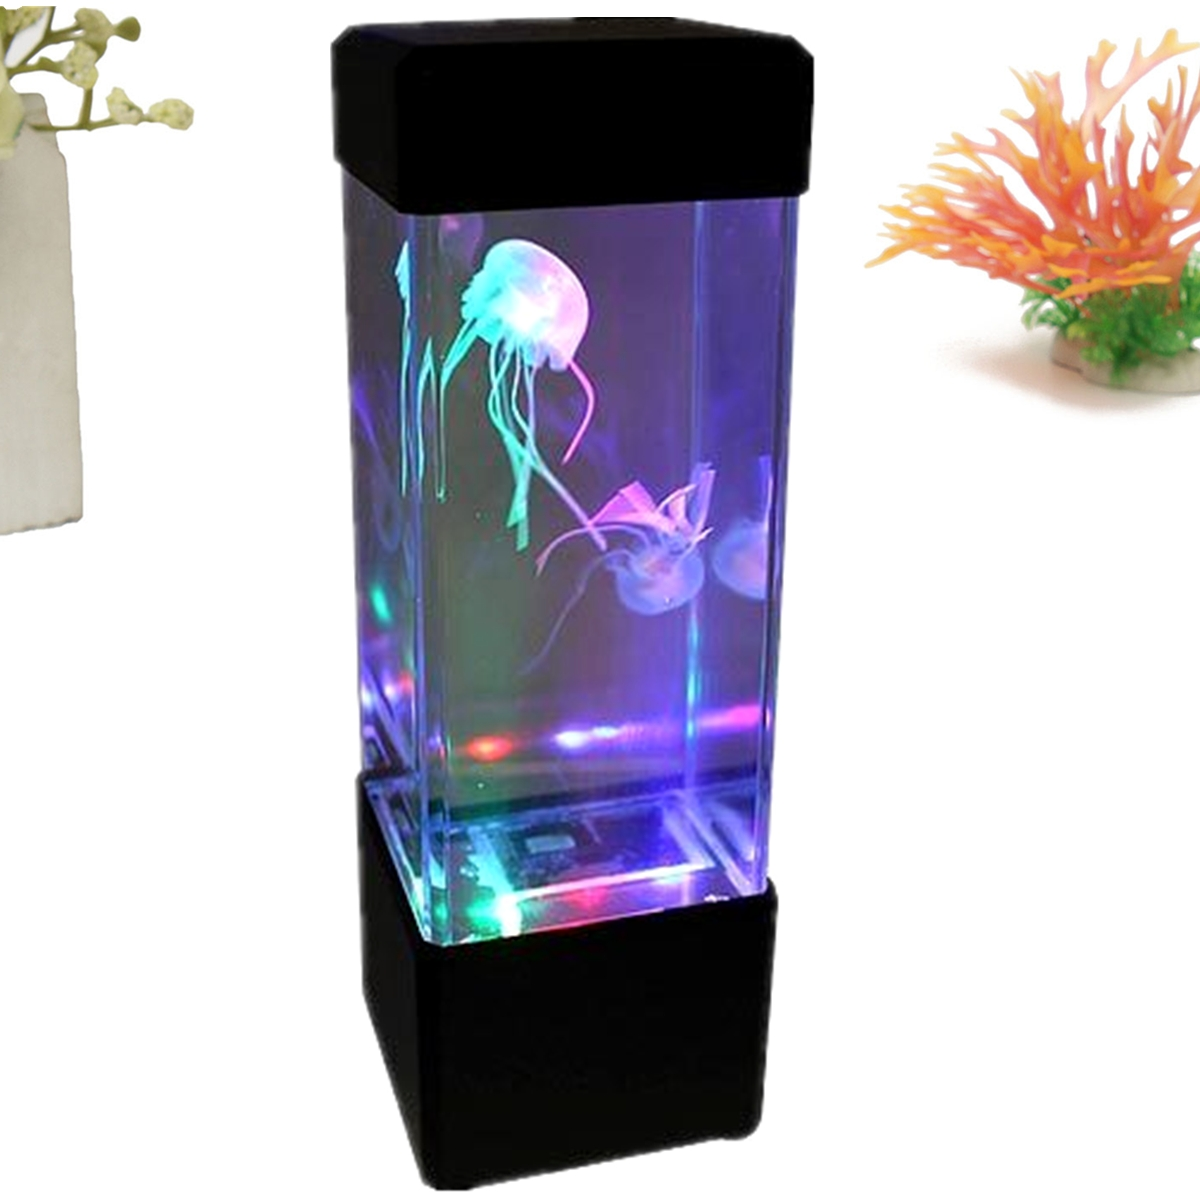 Aquarium led motion lights lamp jellyfish fish volcano - Lampe de table enfant ...